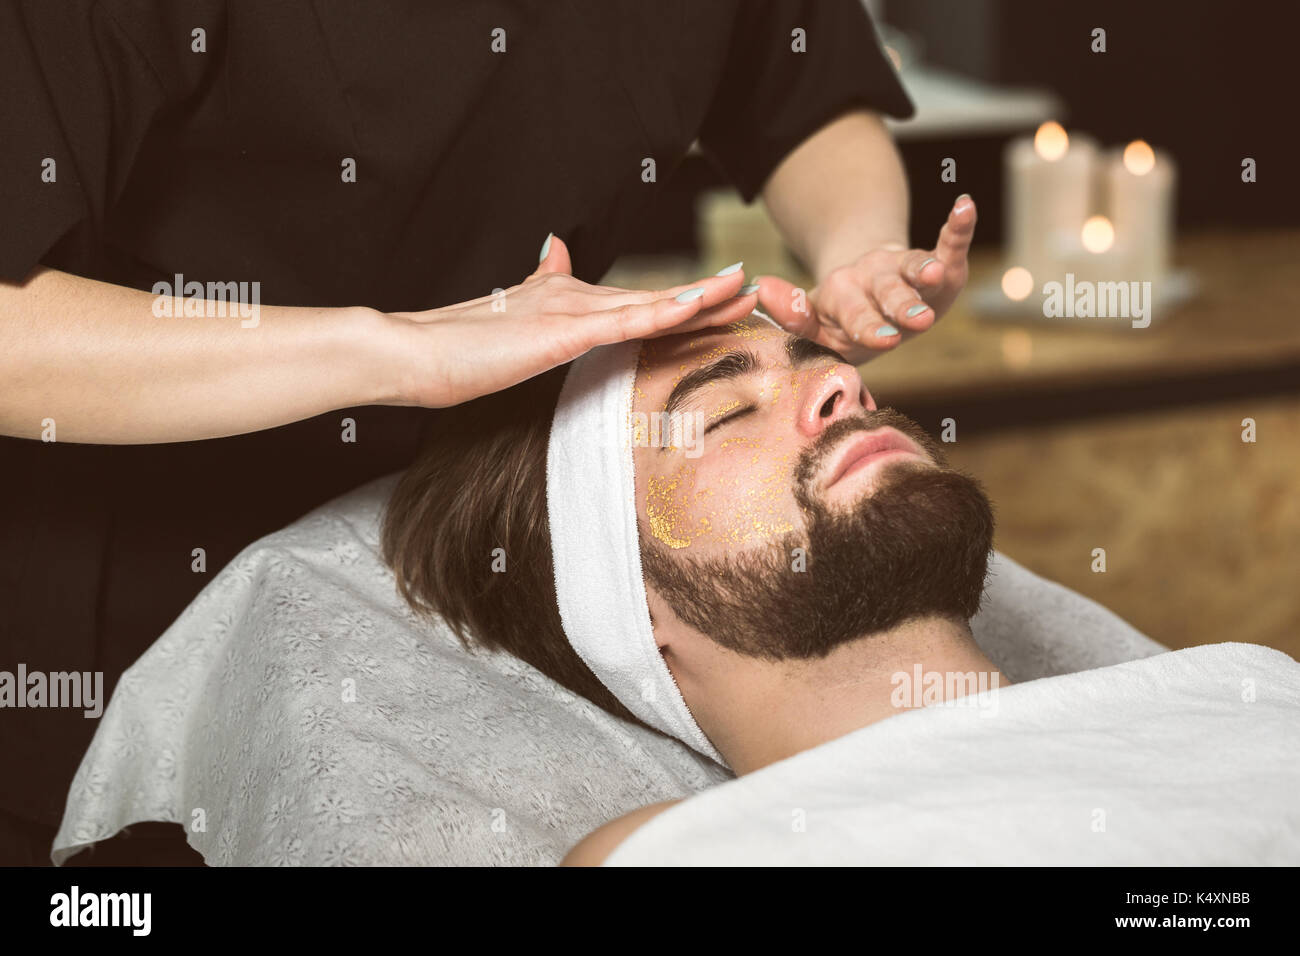 Man at beautician's during gold mask anti-aging therapy - Stock Image